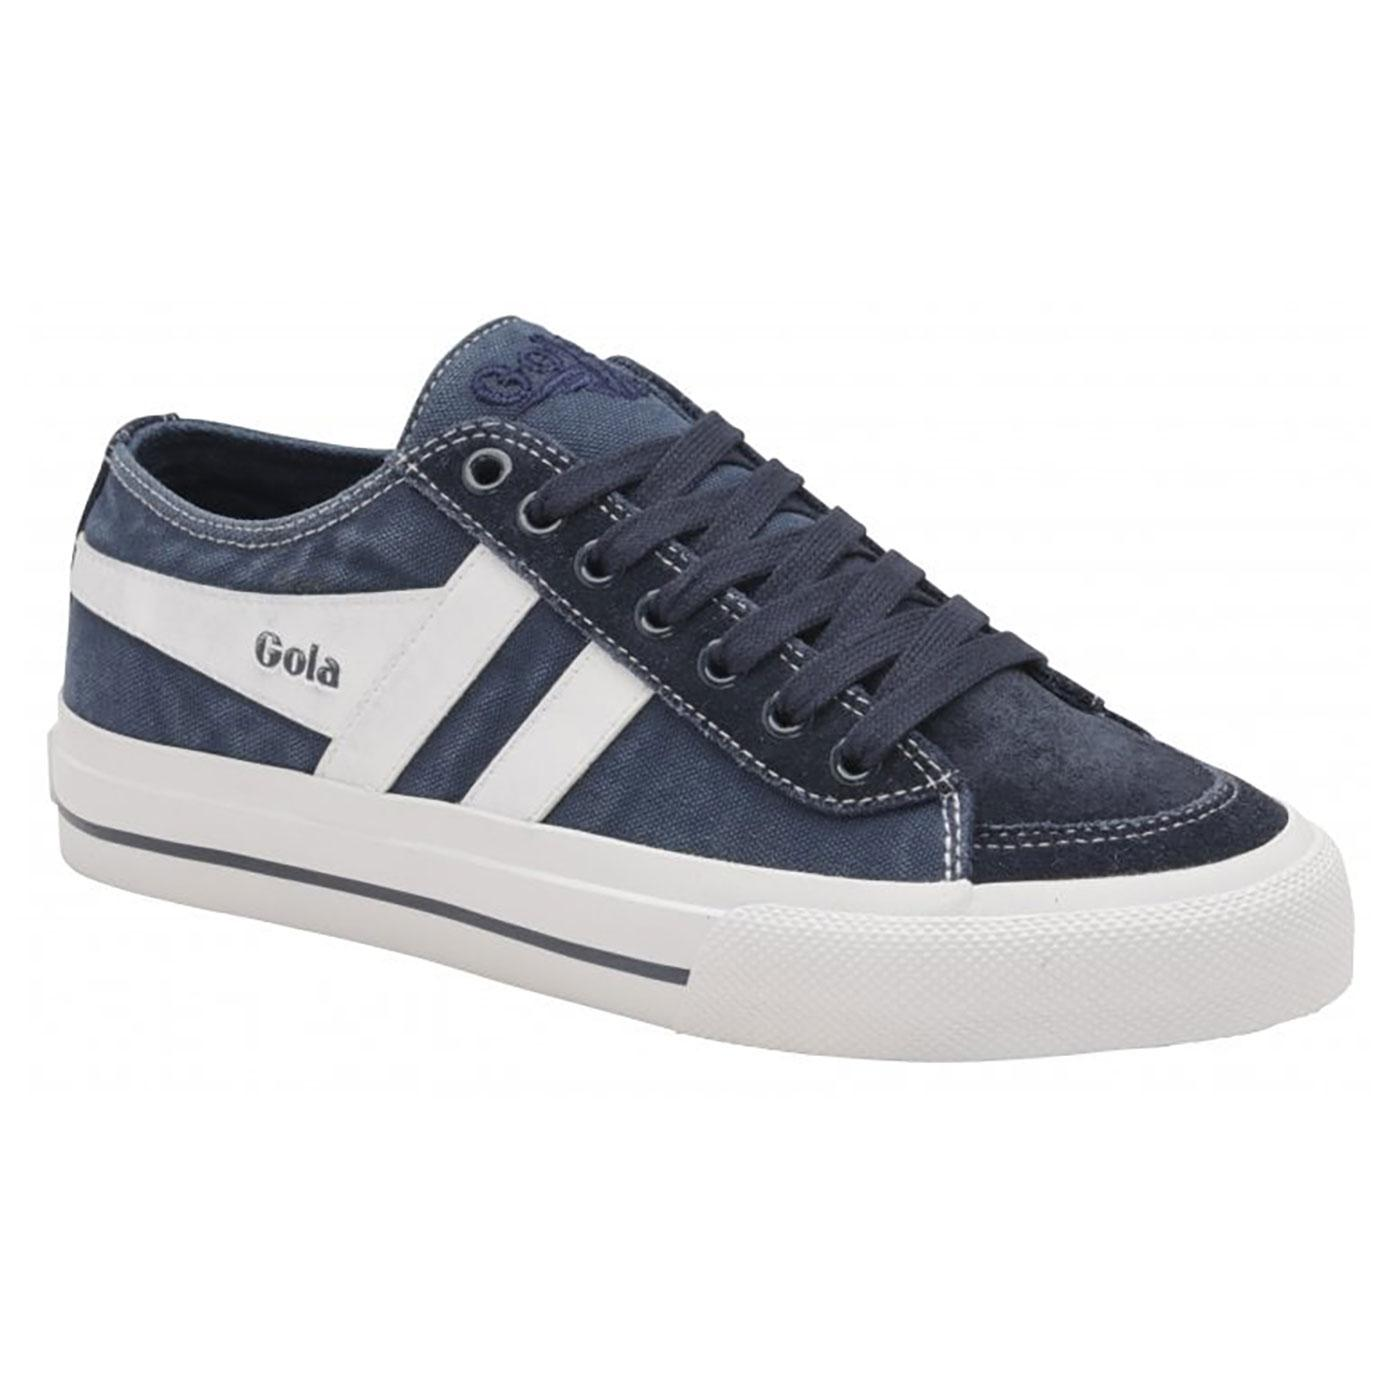 Quota II GOLA Womens 70s Washed Canvas Trainers N